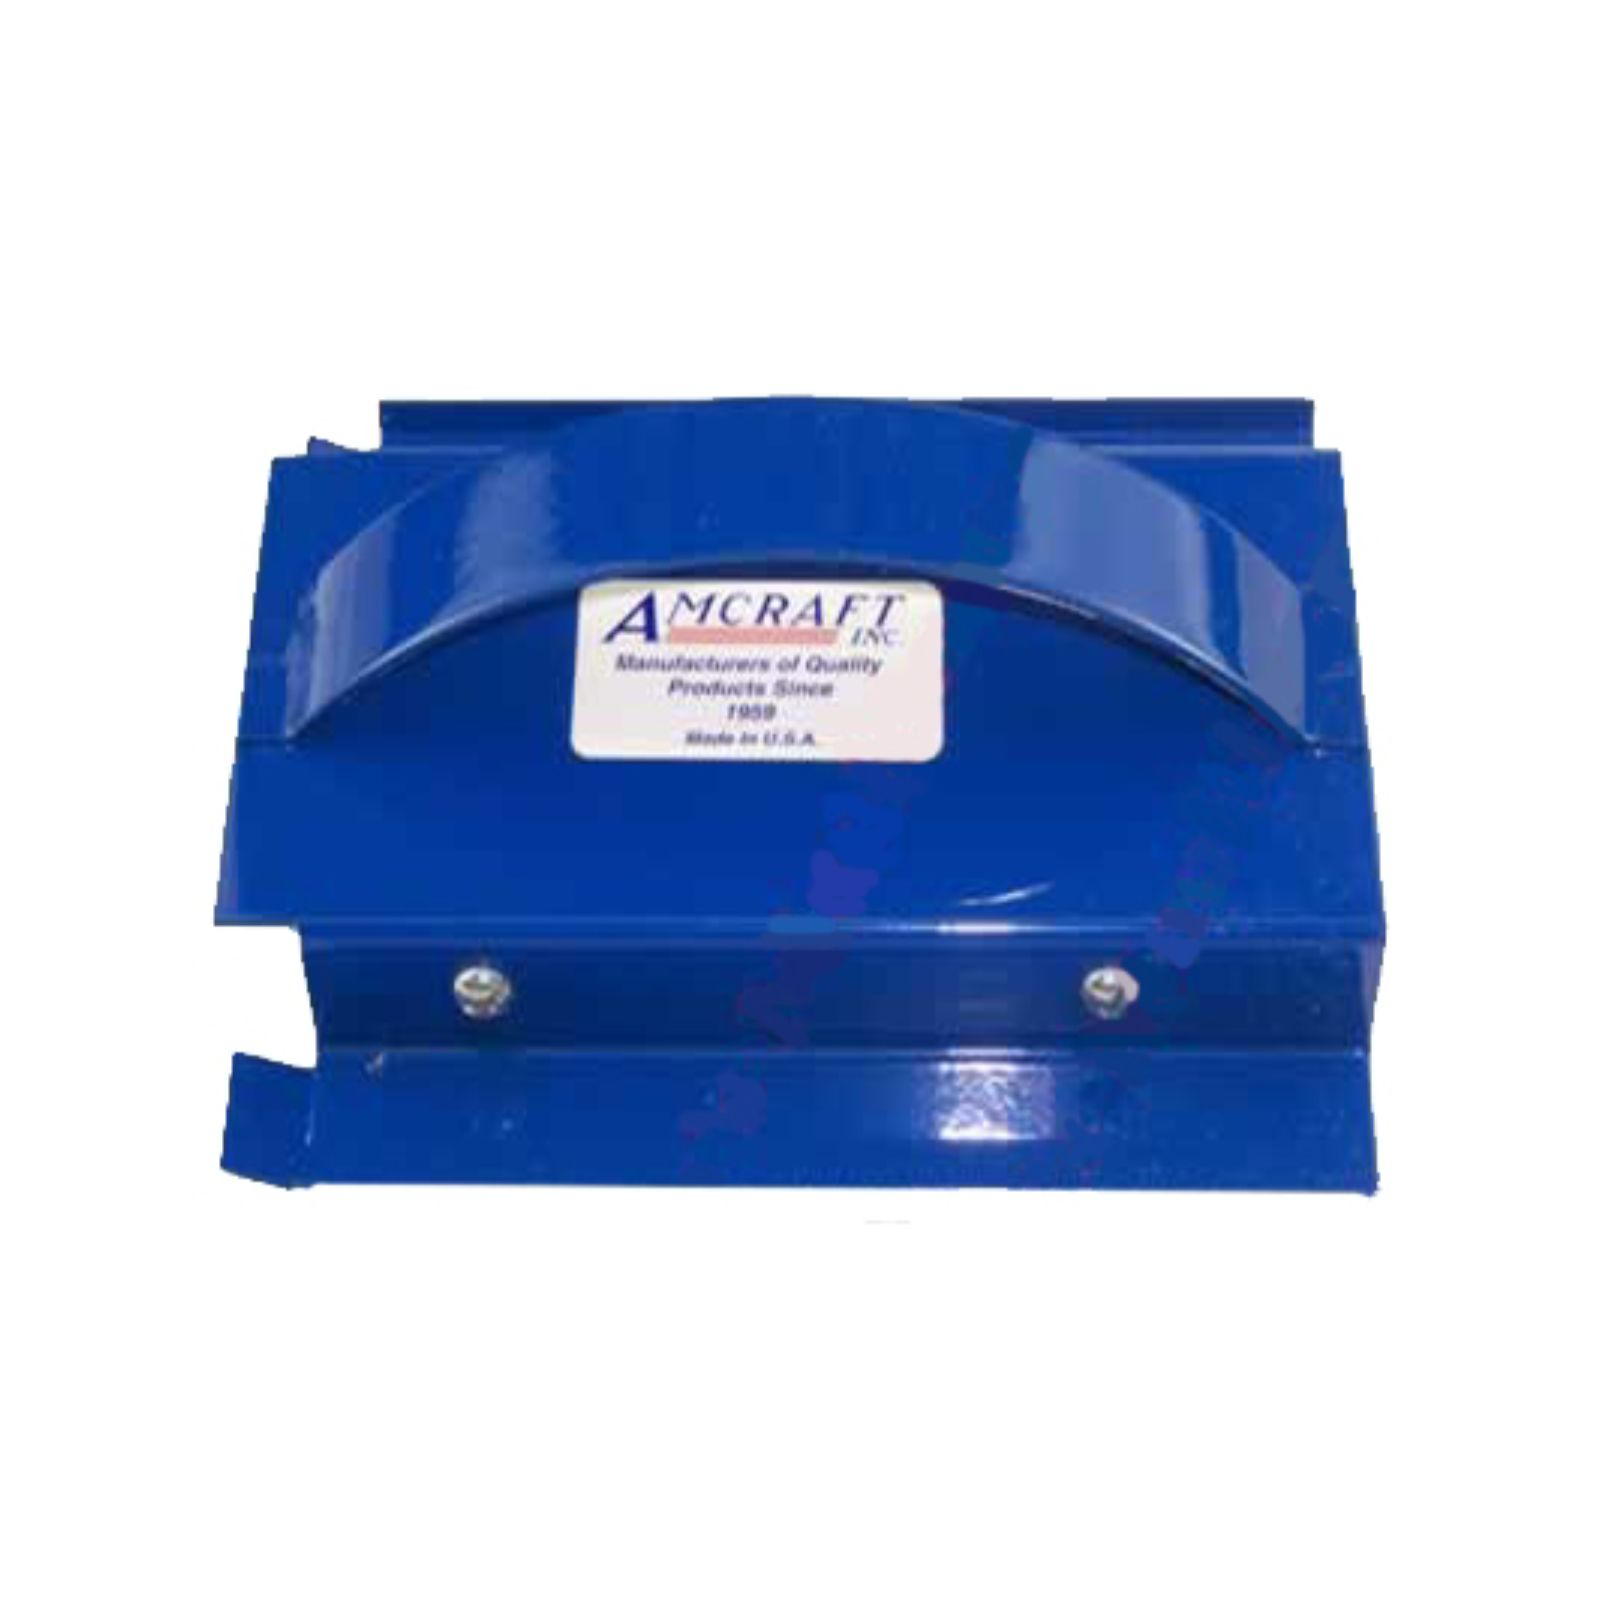 "Amcraft 1102 -  Blue- End Cut Off (4 In 1 Cut) 1"" Duct Board Tool"